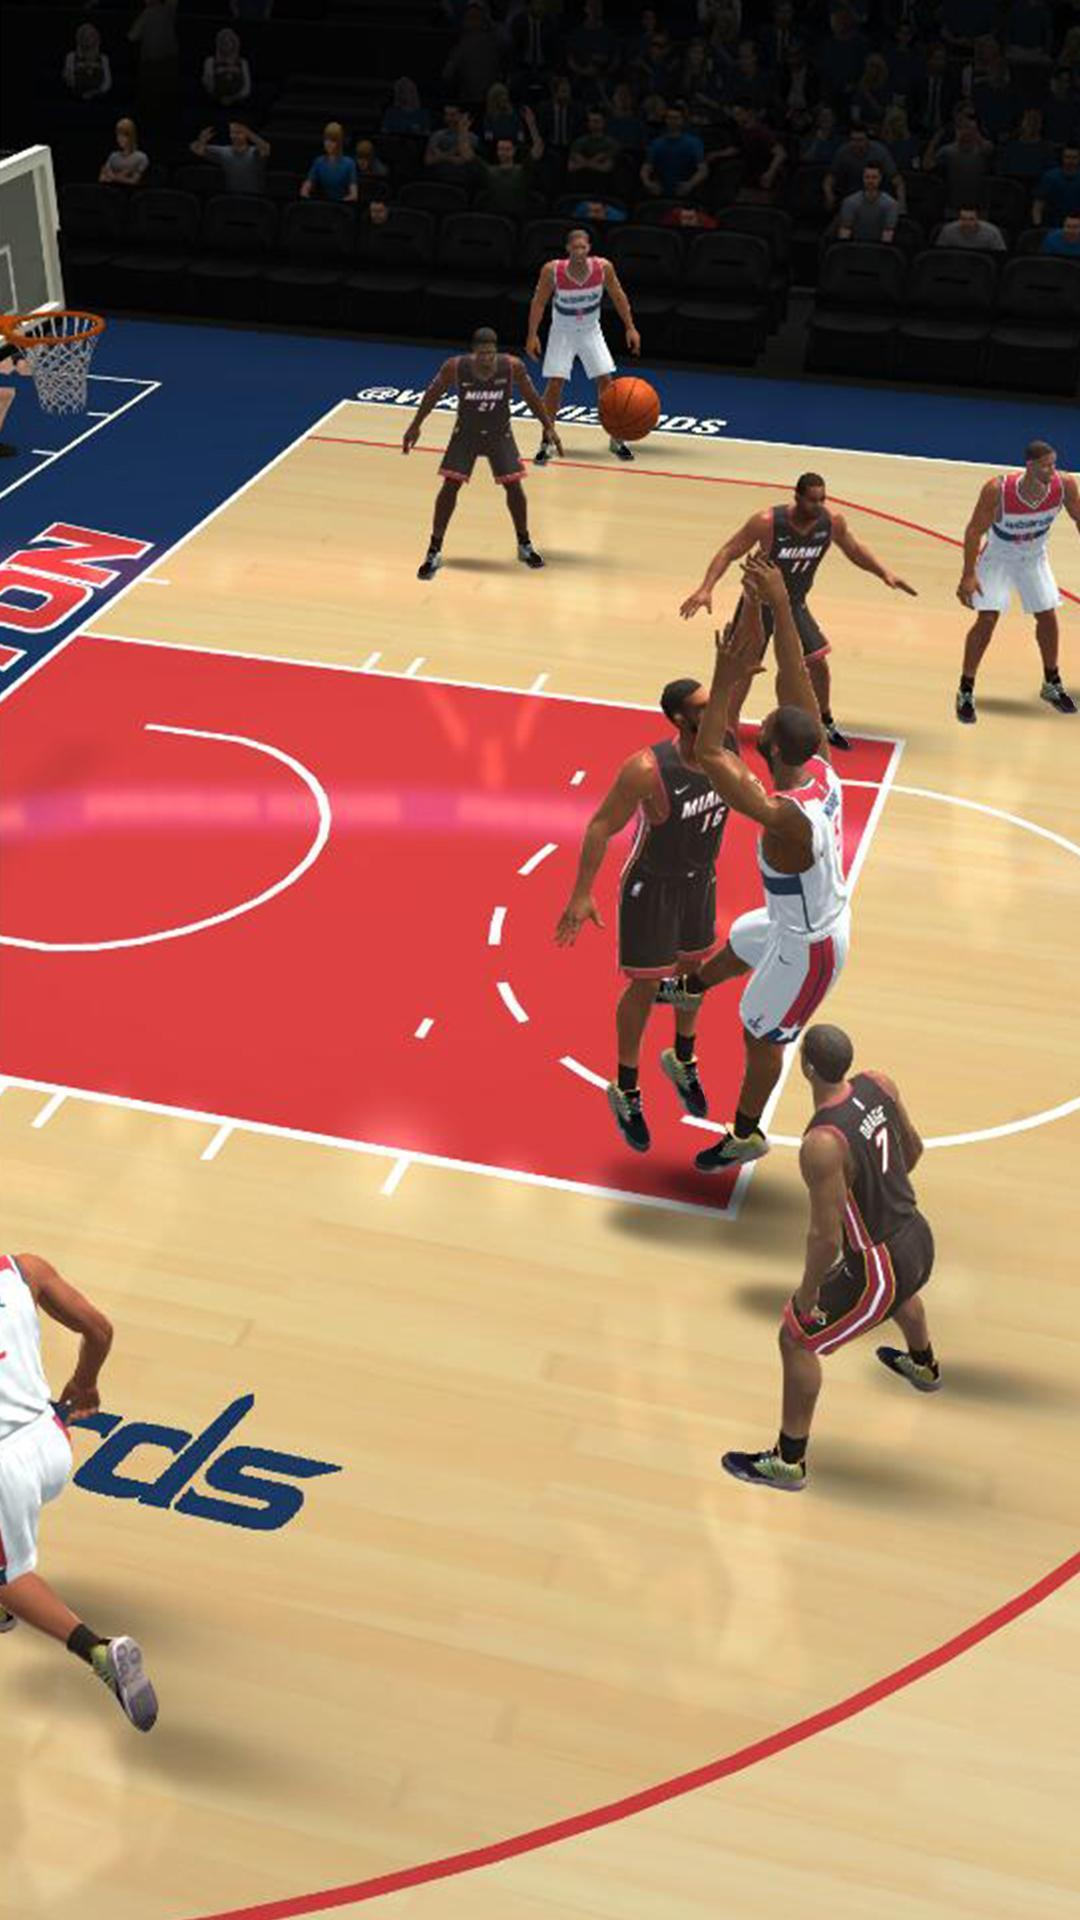 download game nba offline apk